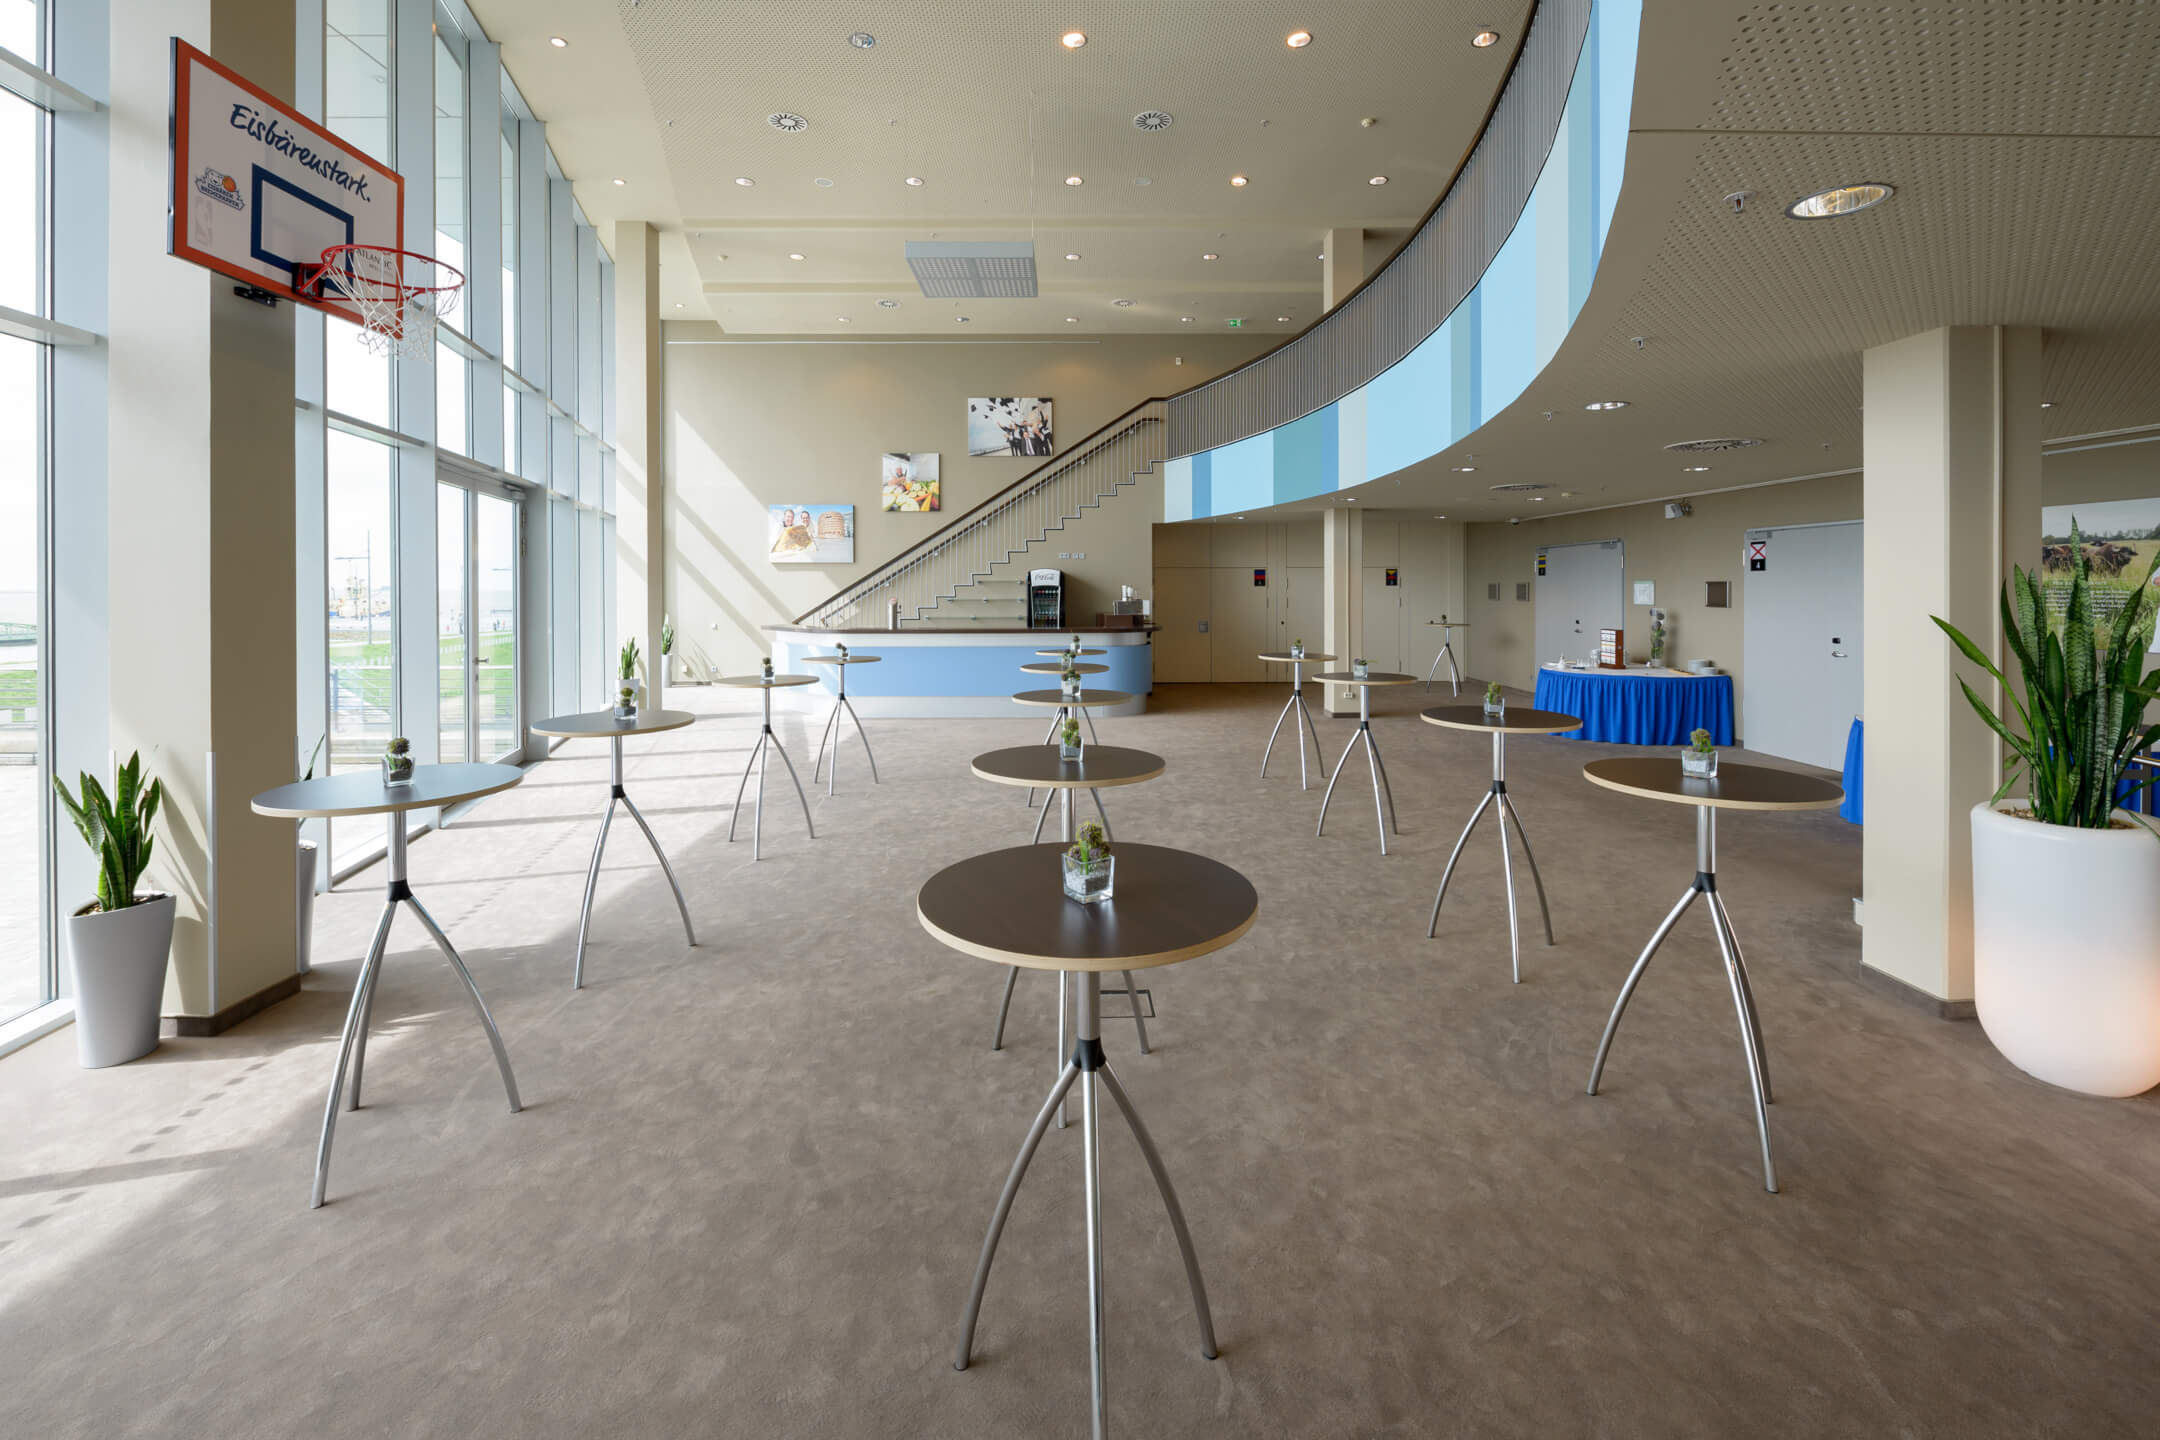 Conference foyer with stand tables